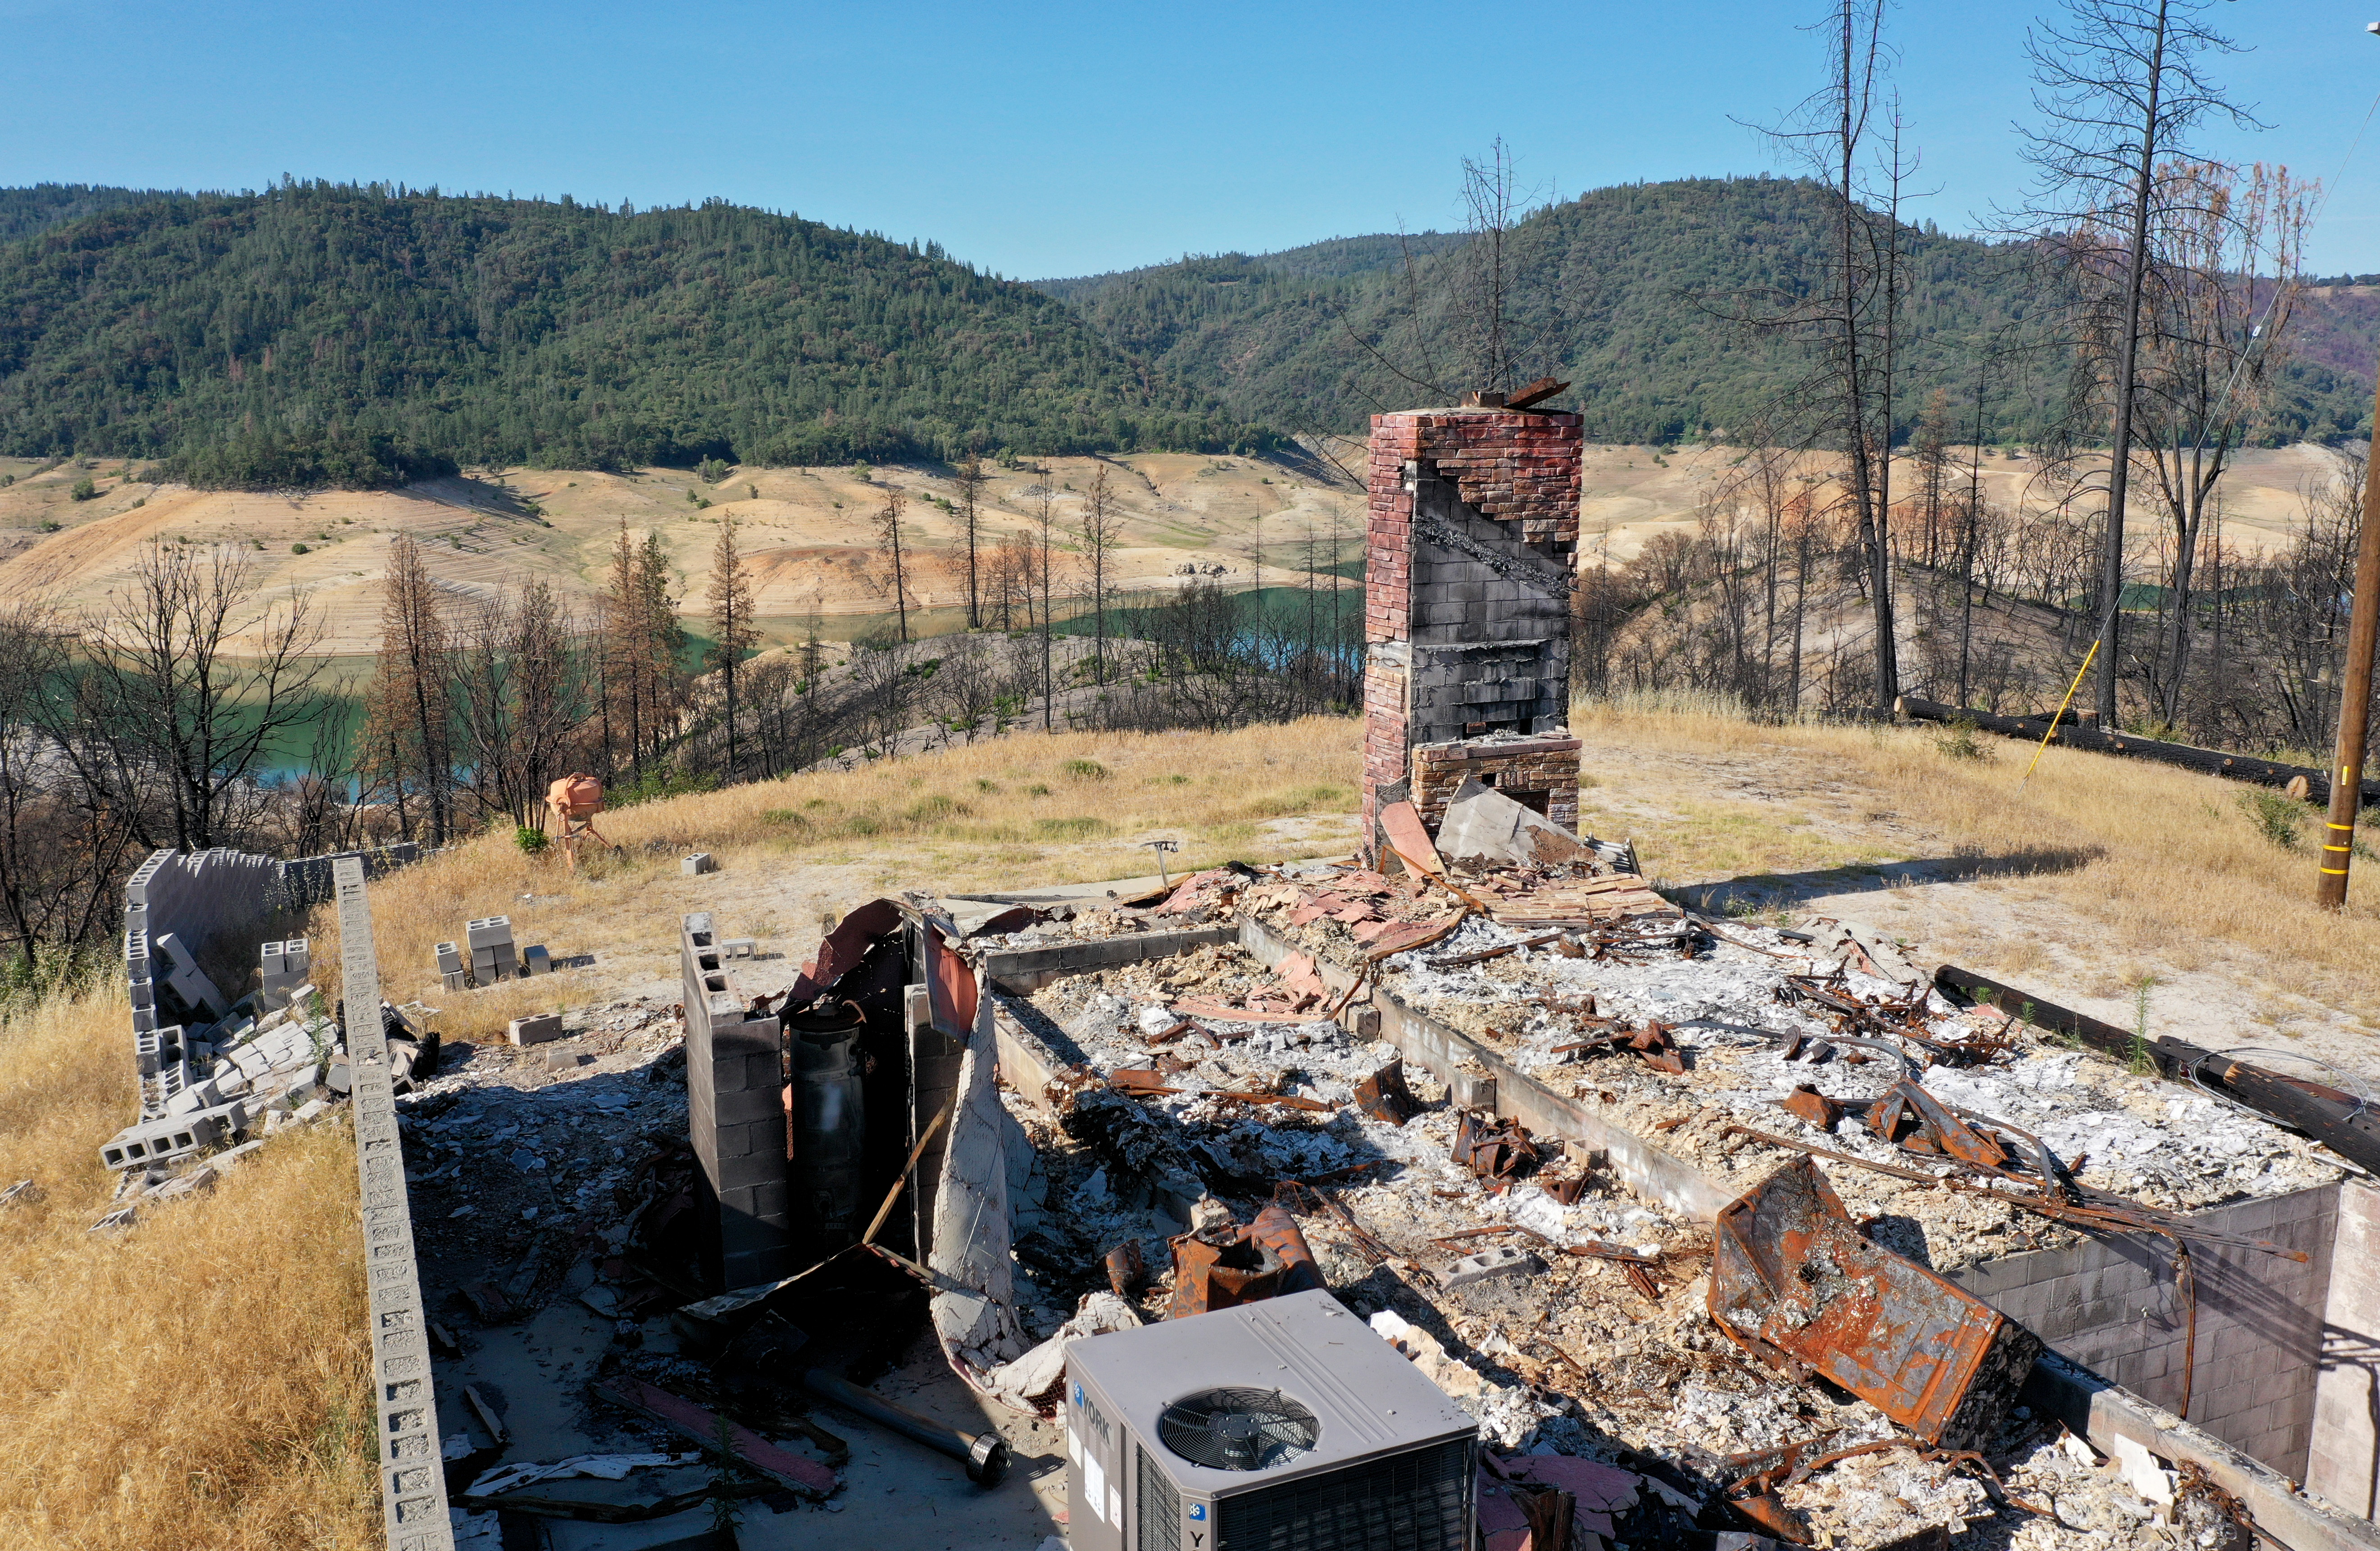 The ruins of a home hit by a recent wildfire in Oroville, Calif.